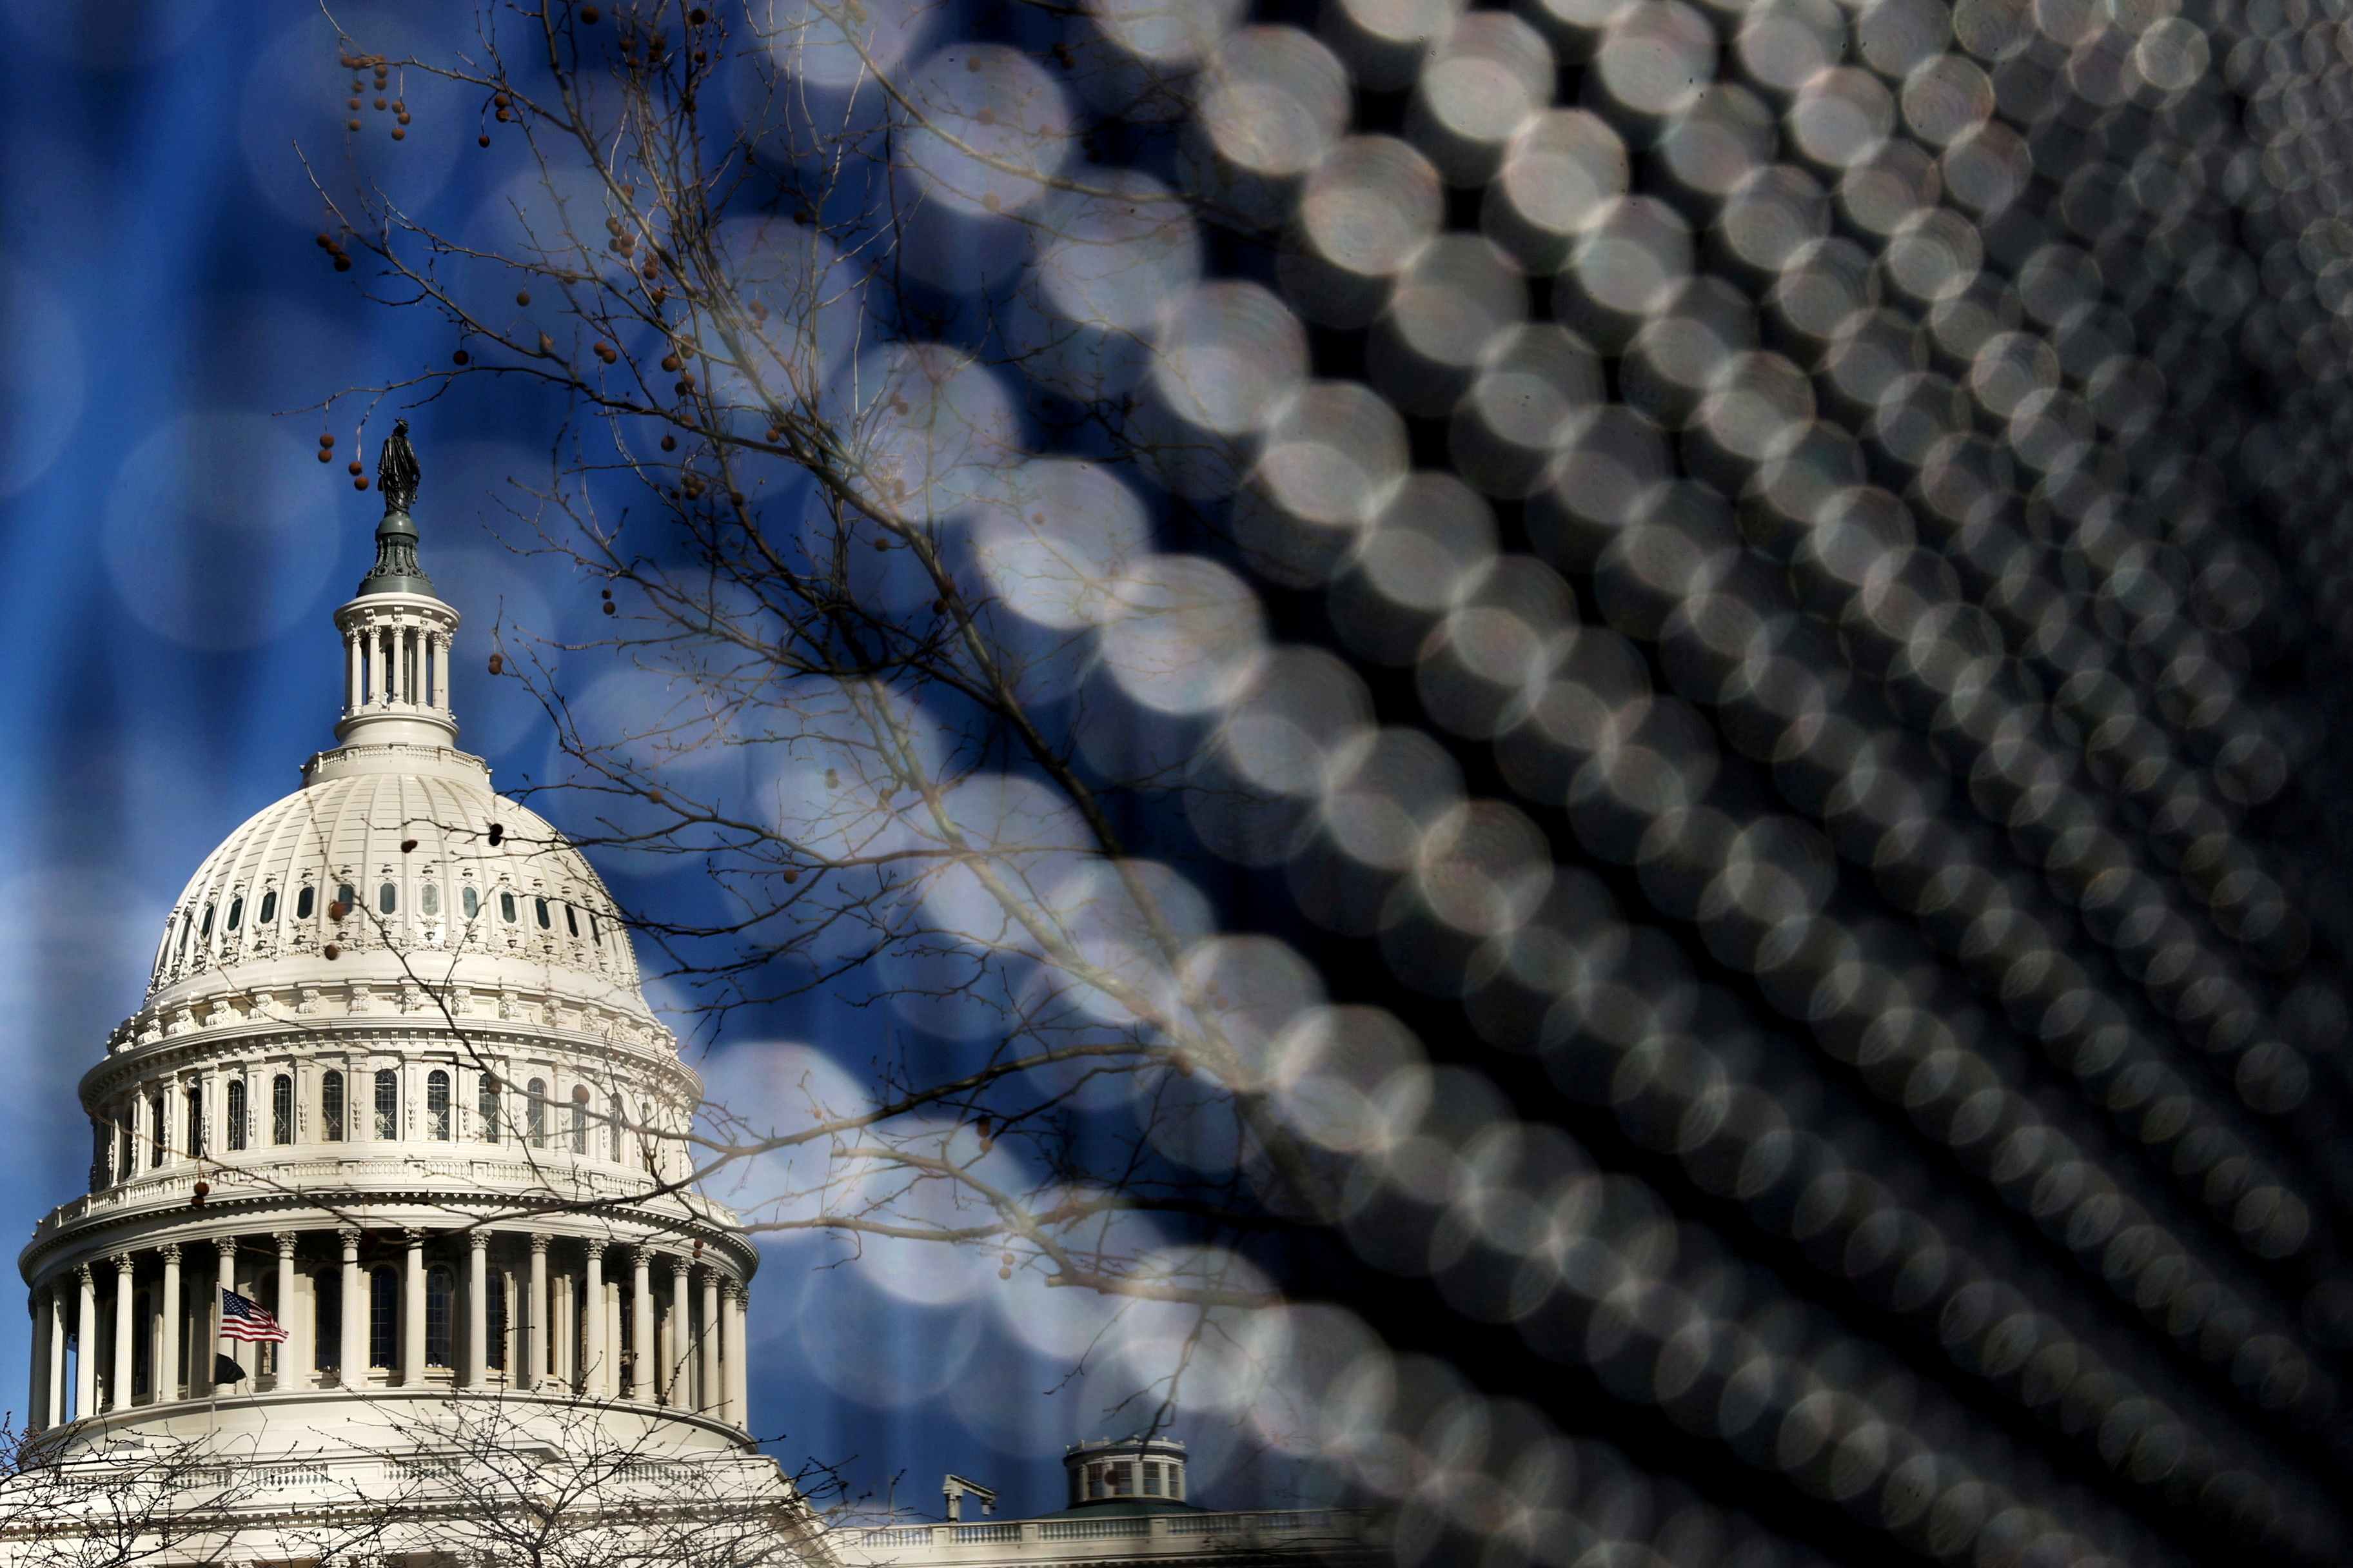 Light catches a security fence around the U.S. Capitol, in Washington, March 15, 2021. REUTERS/Jonathan Ernst/File Photo